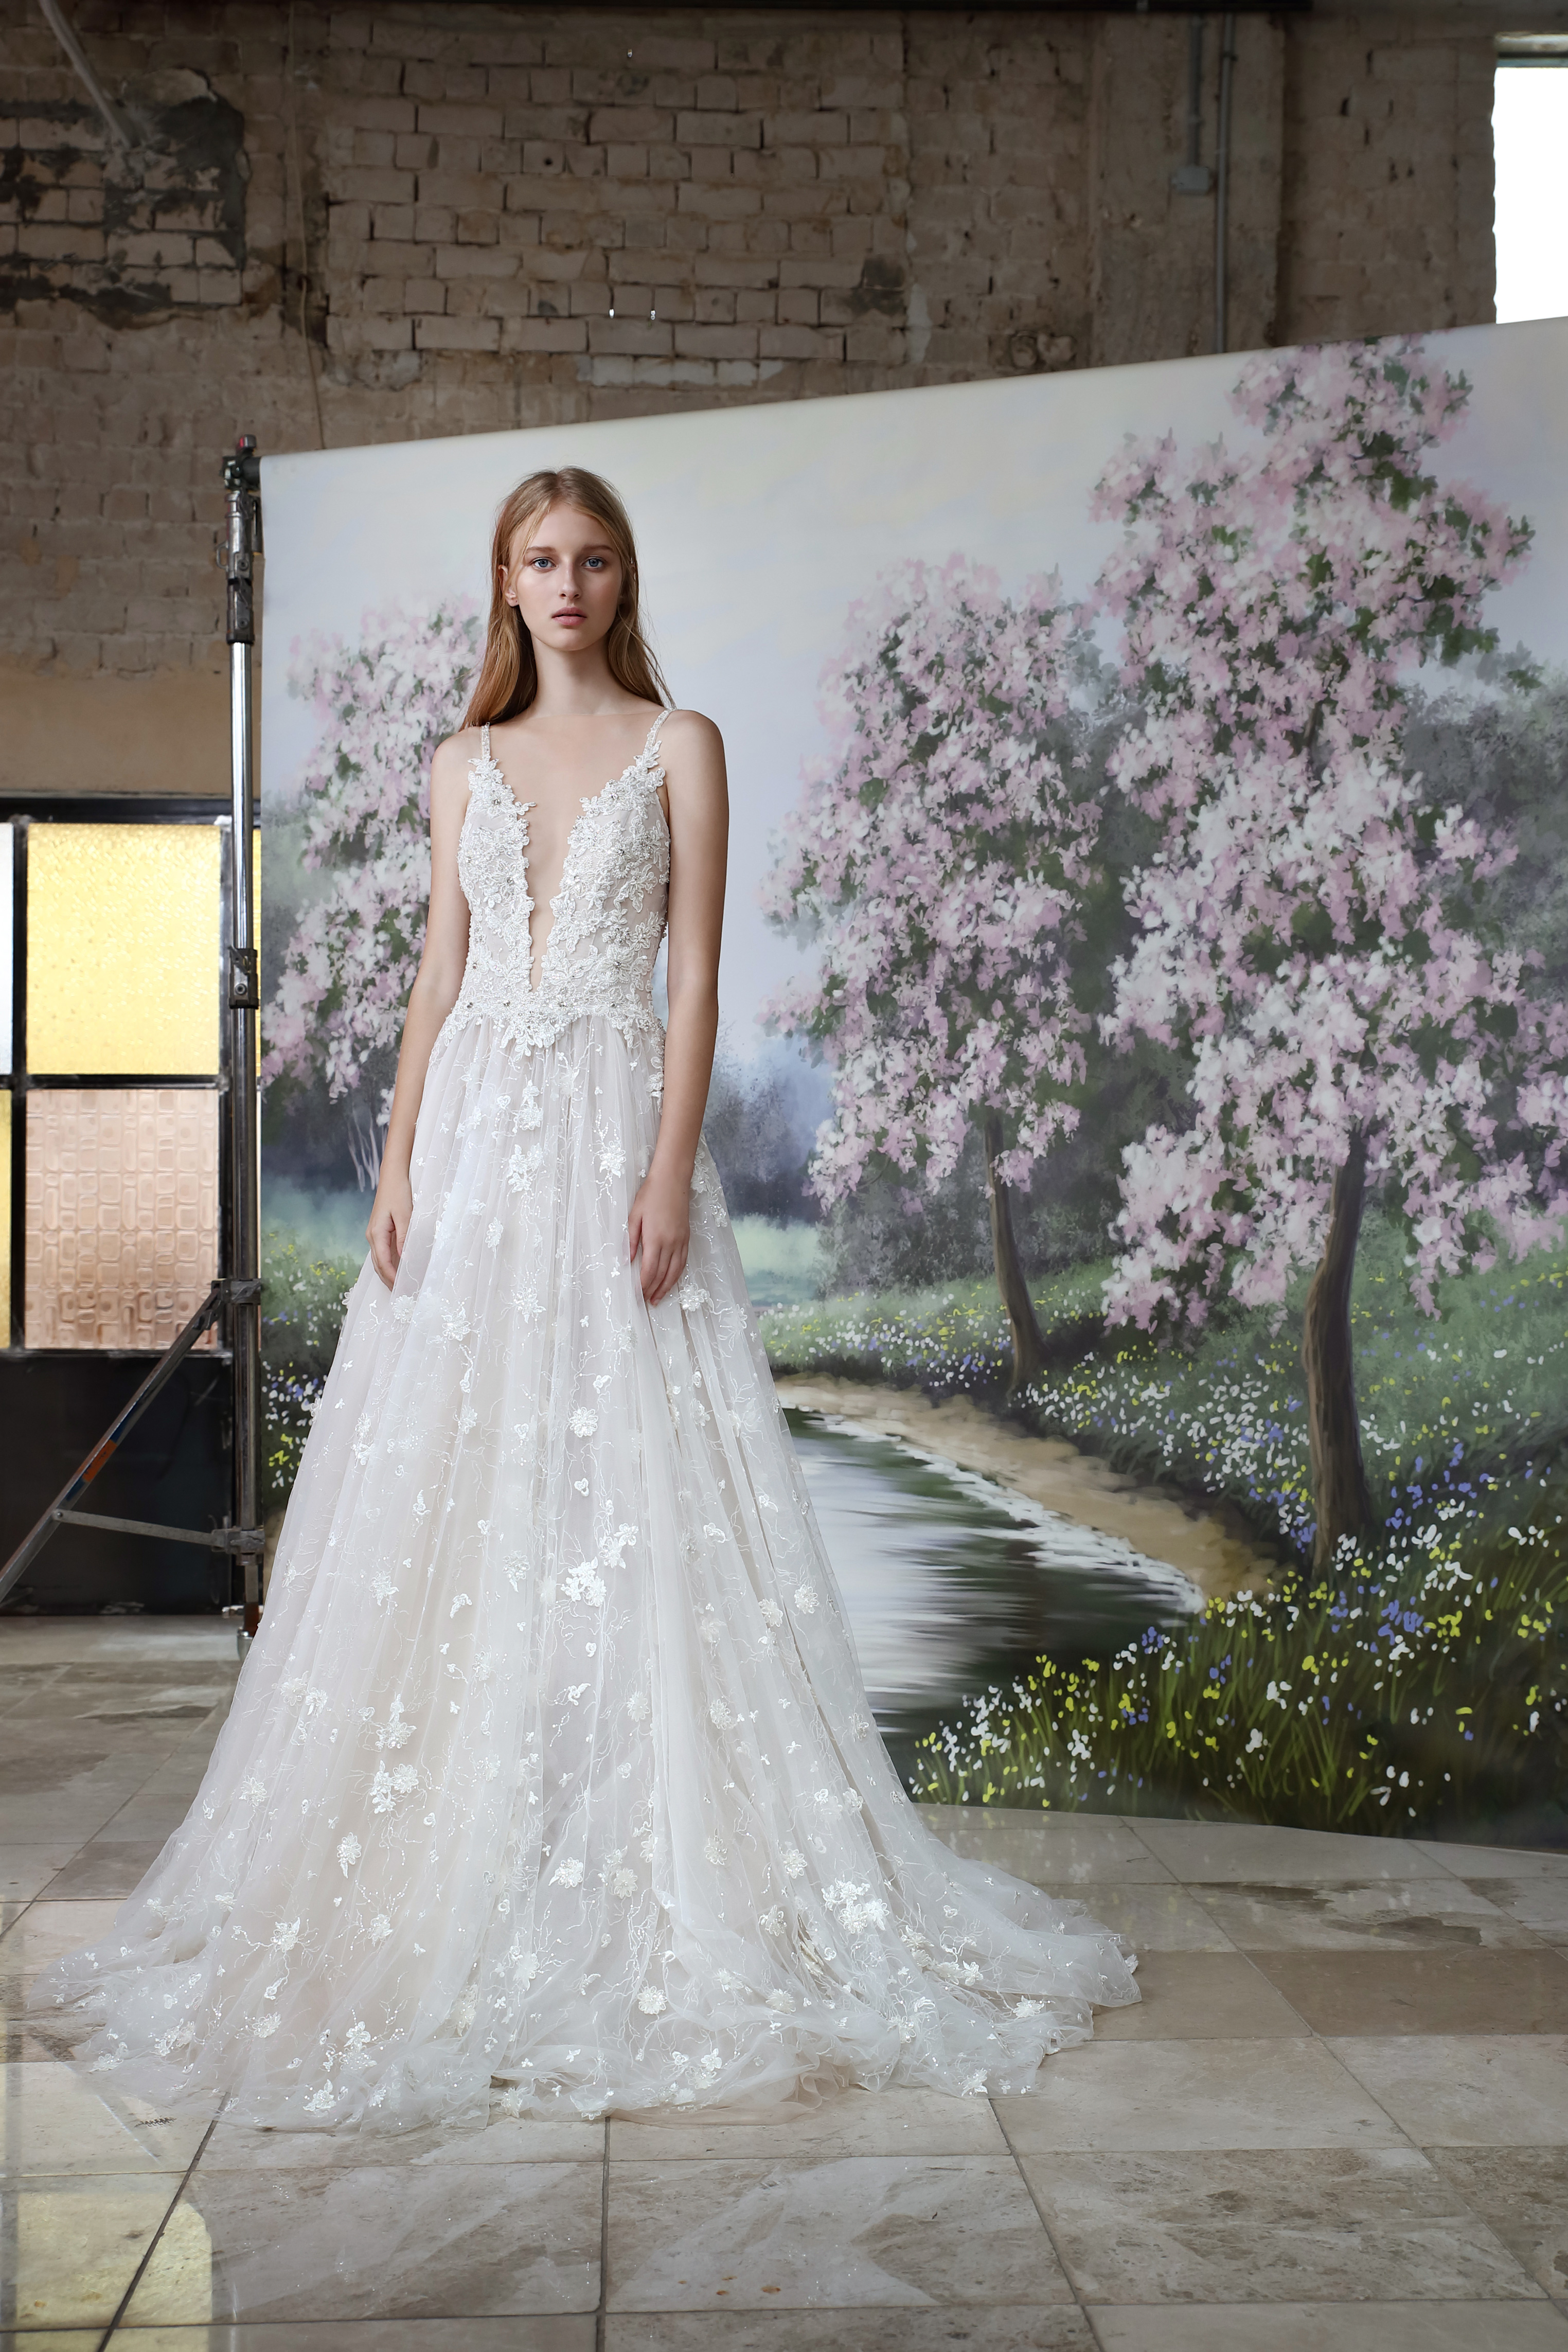 Gala by Galia Lahav A-line wedding dress fall 2019